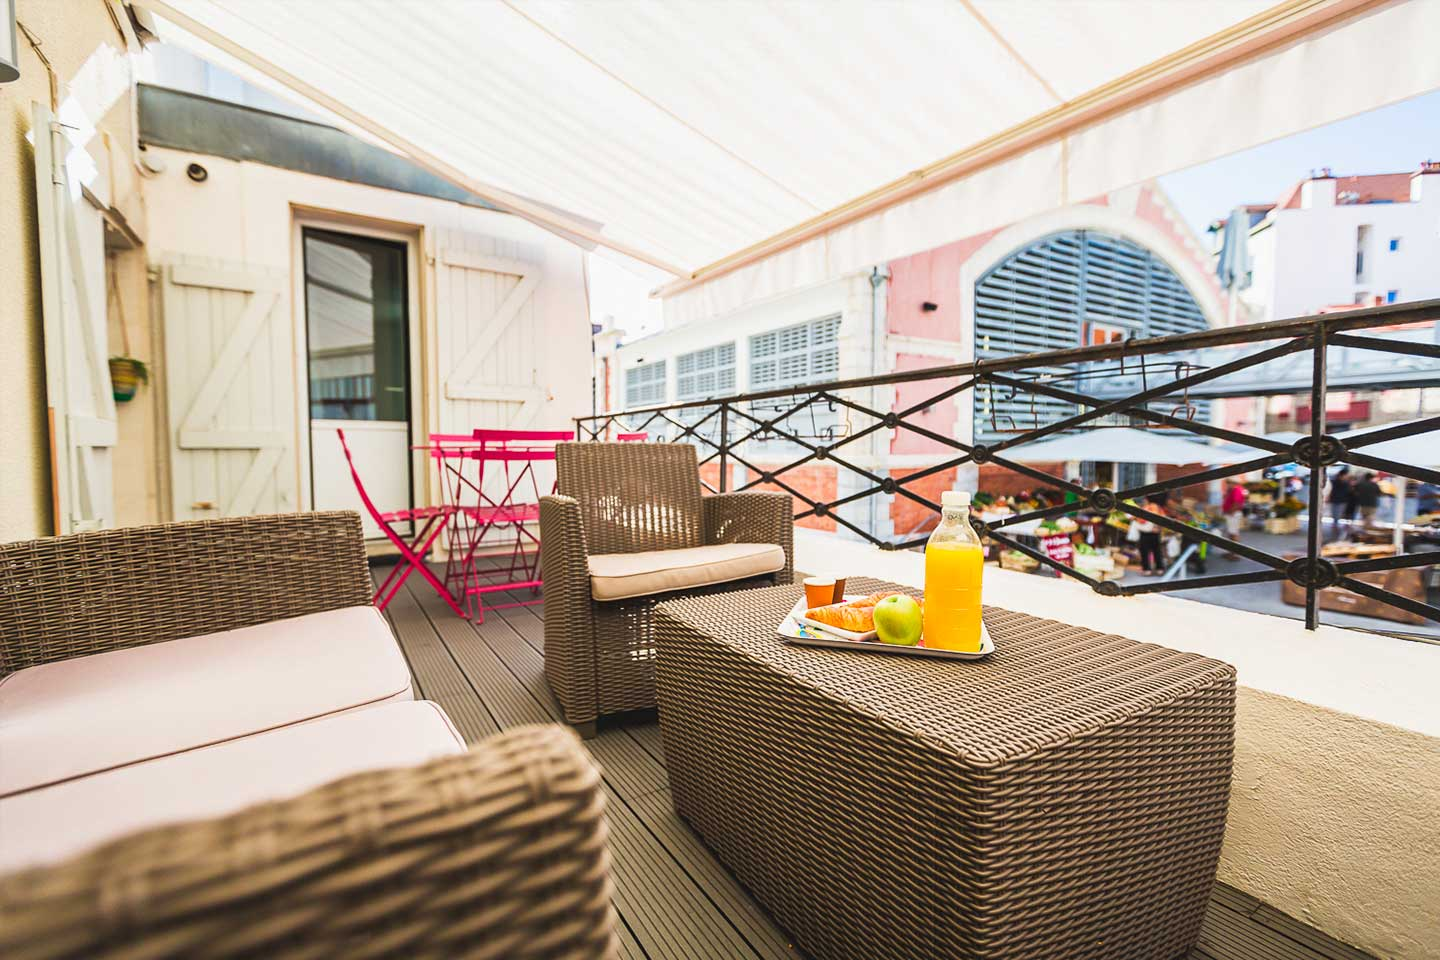 TERRASSE Rent an apartment with terrace in Biarritz